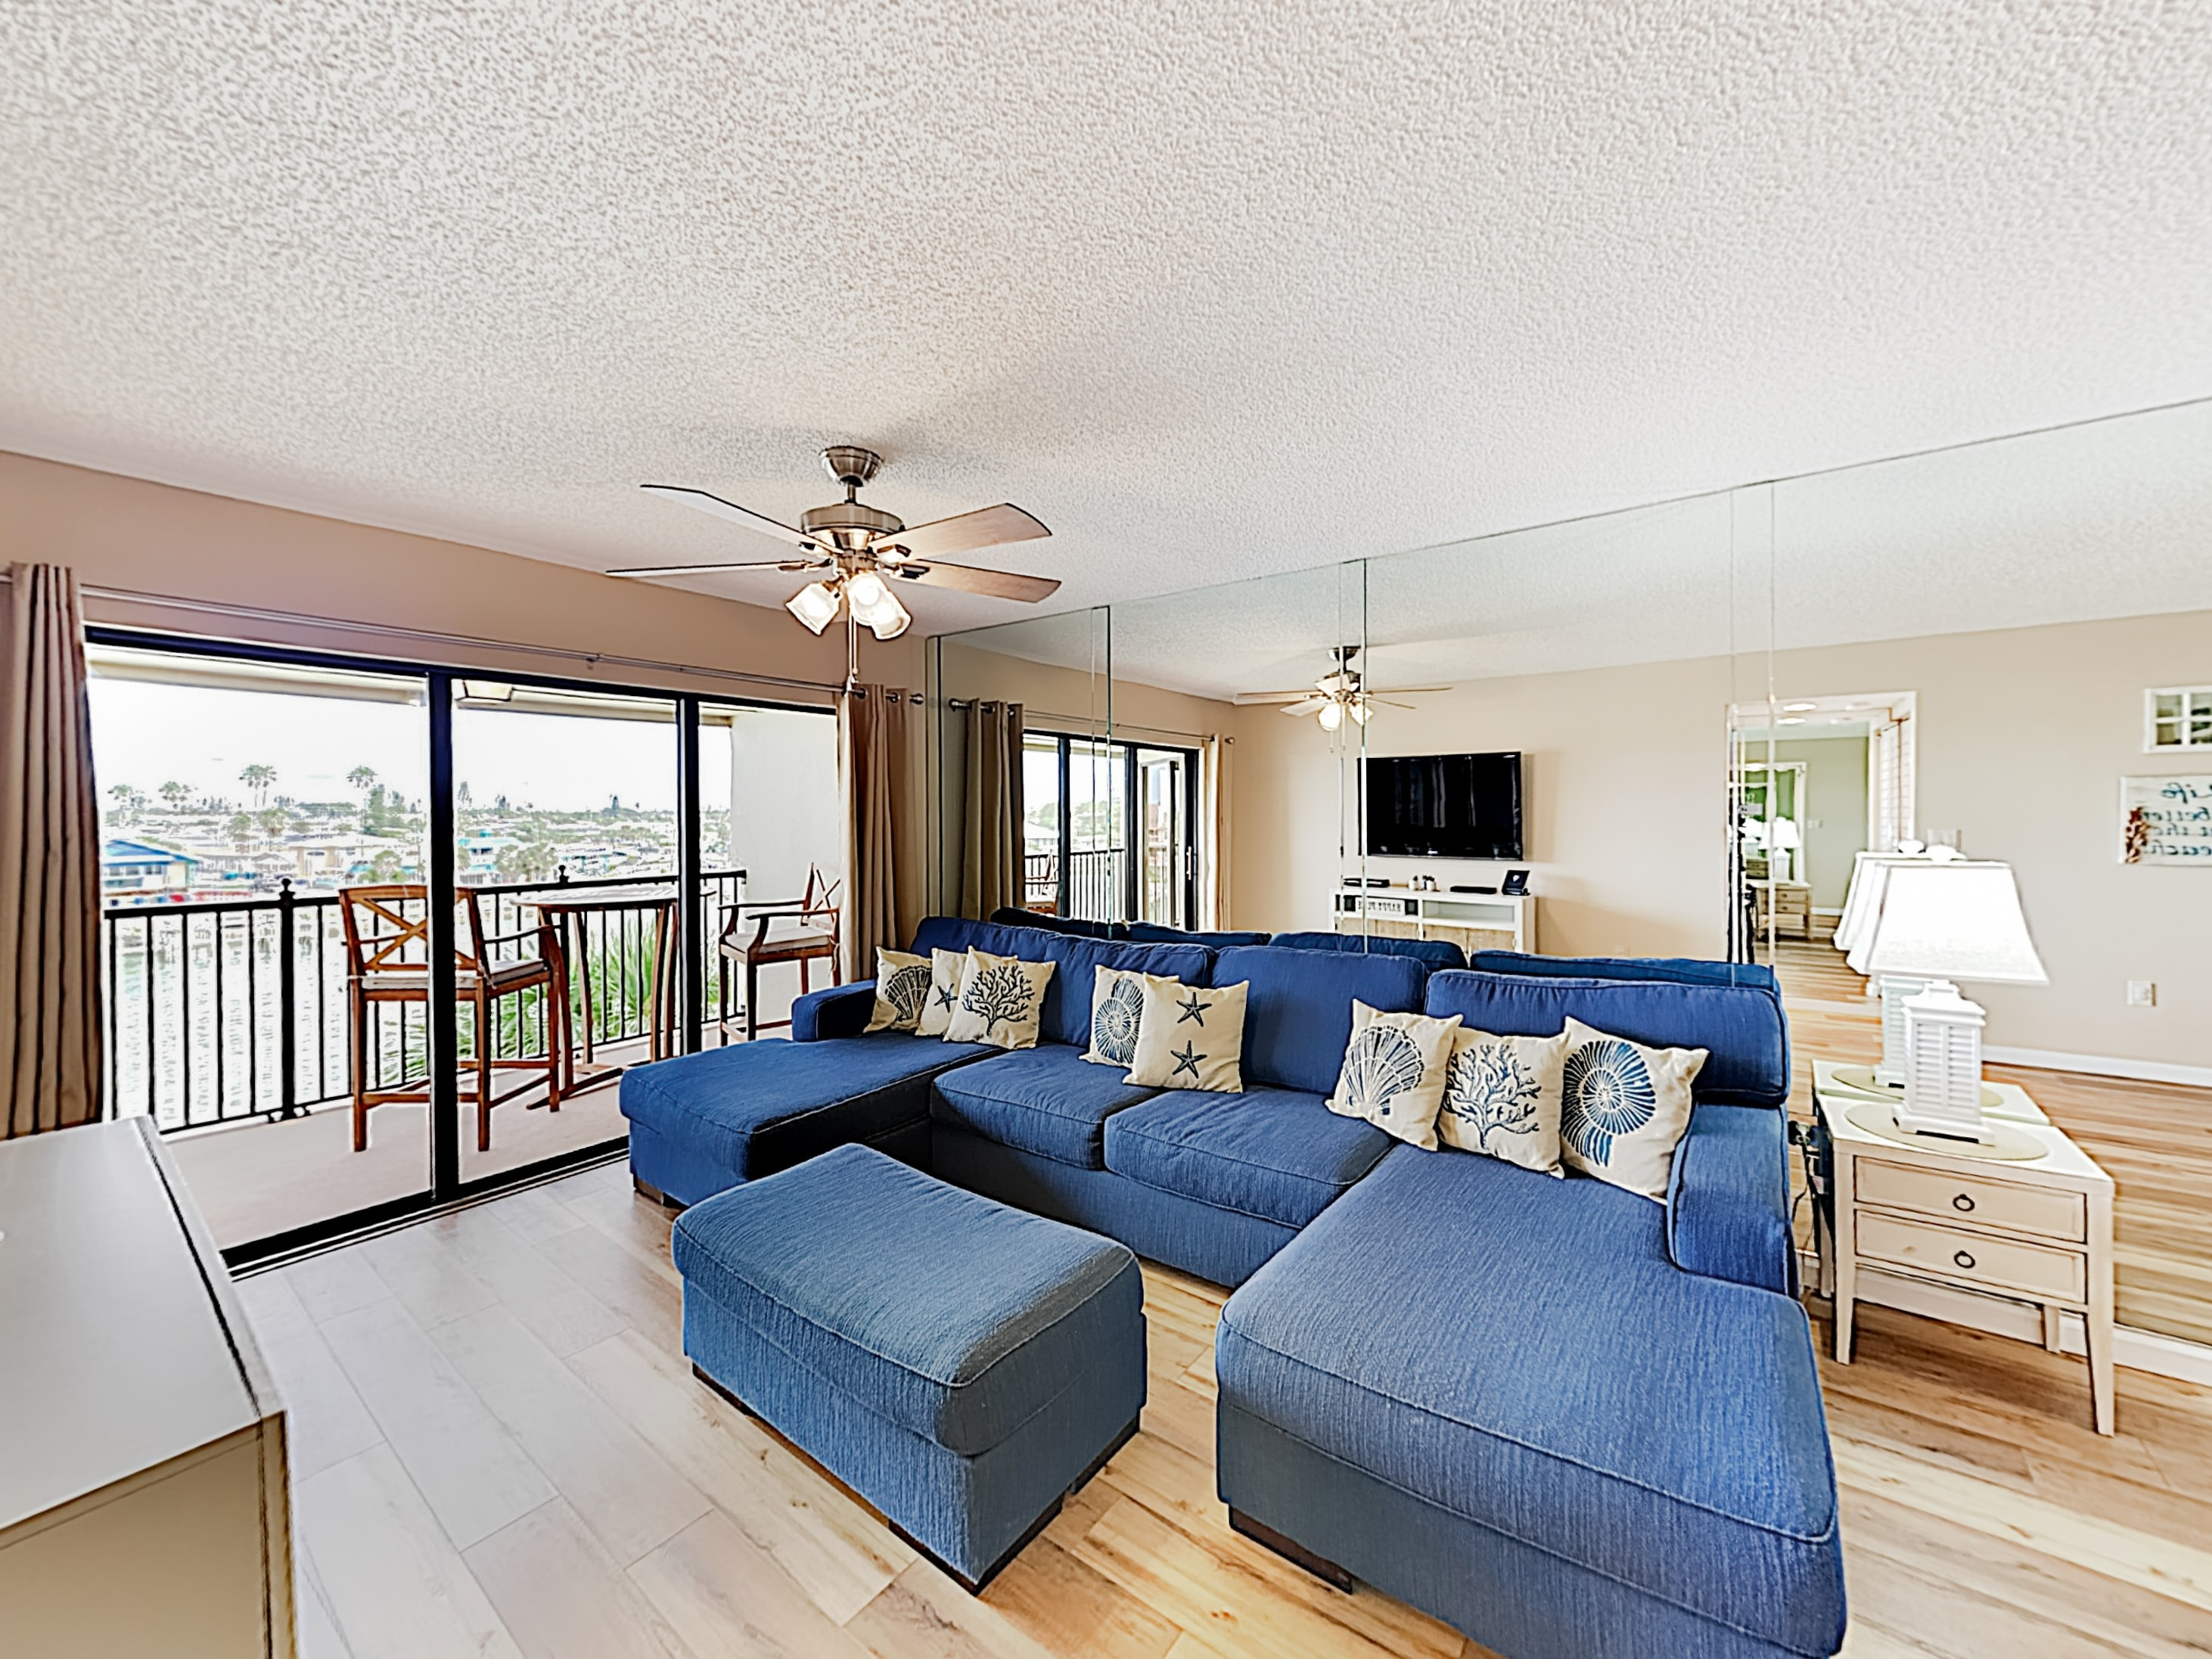 Welcome to Treasure Island! This condo is professionally managed by TurnKey Vacation Rentals.